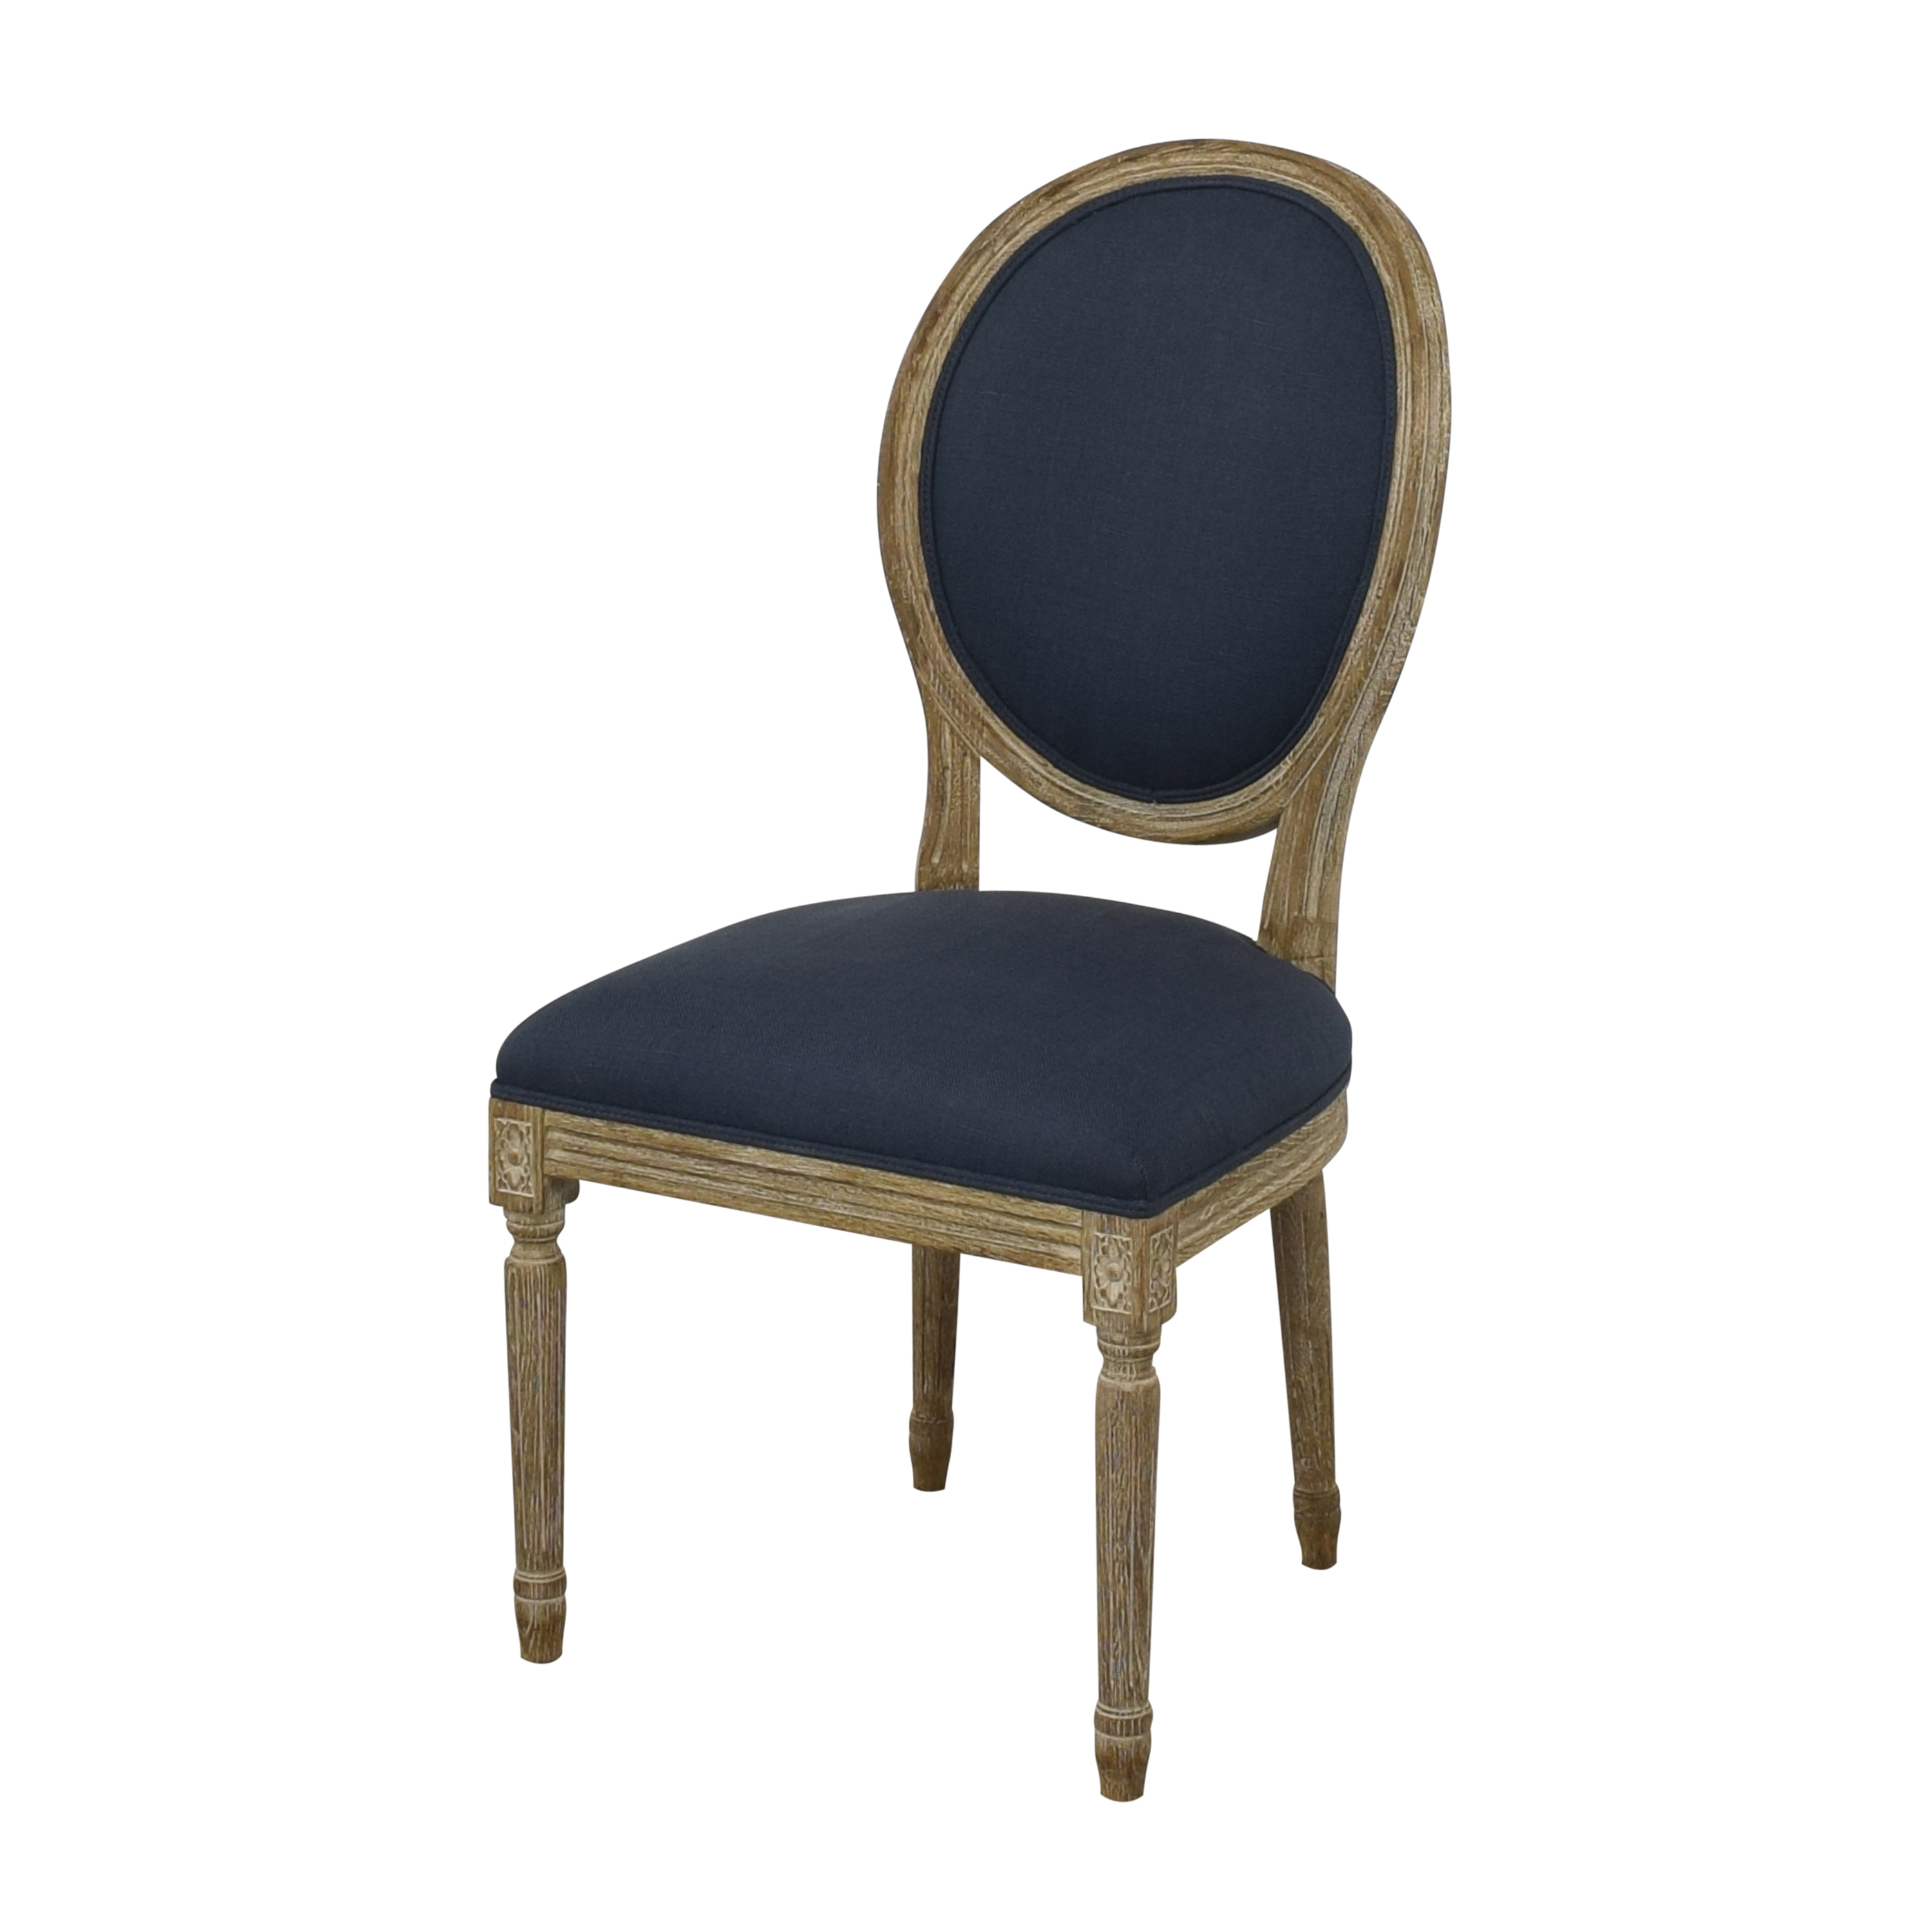 Restoration Hardware Vintage French Round Dining Chairs / Dining Chairs